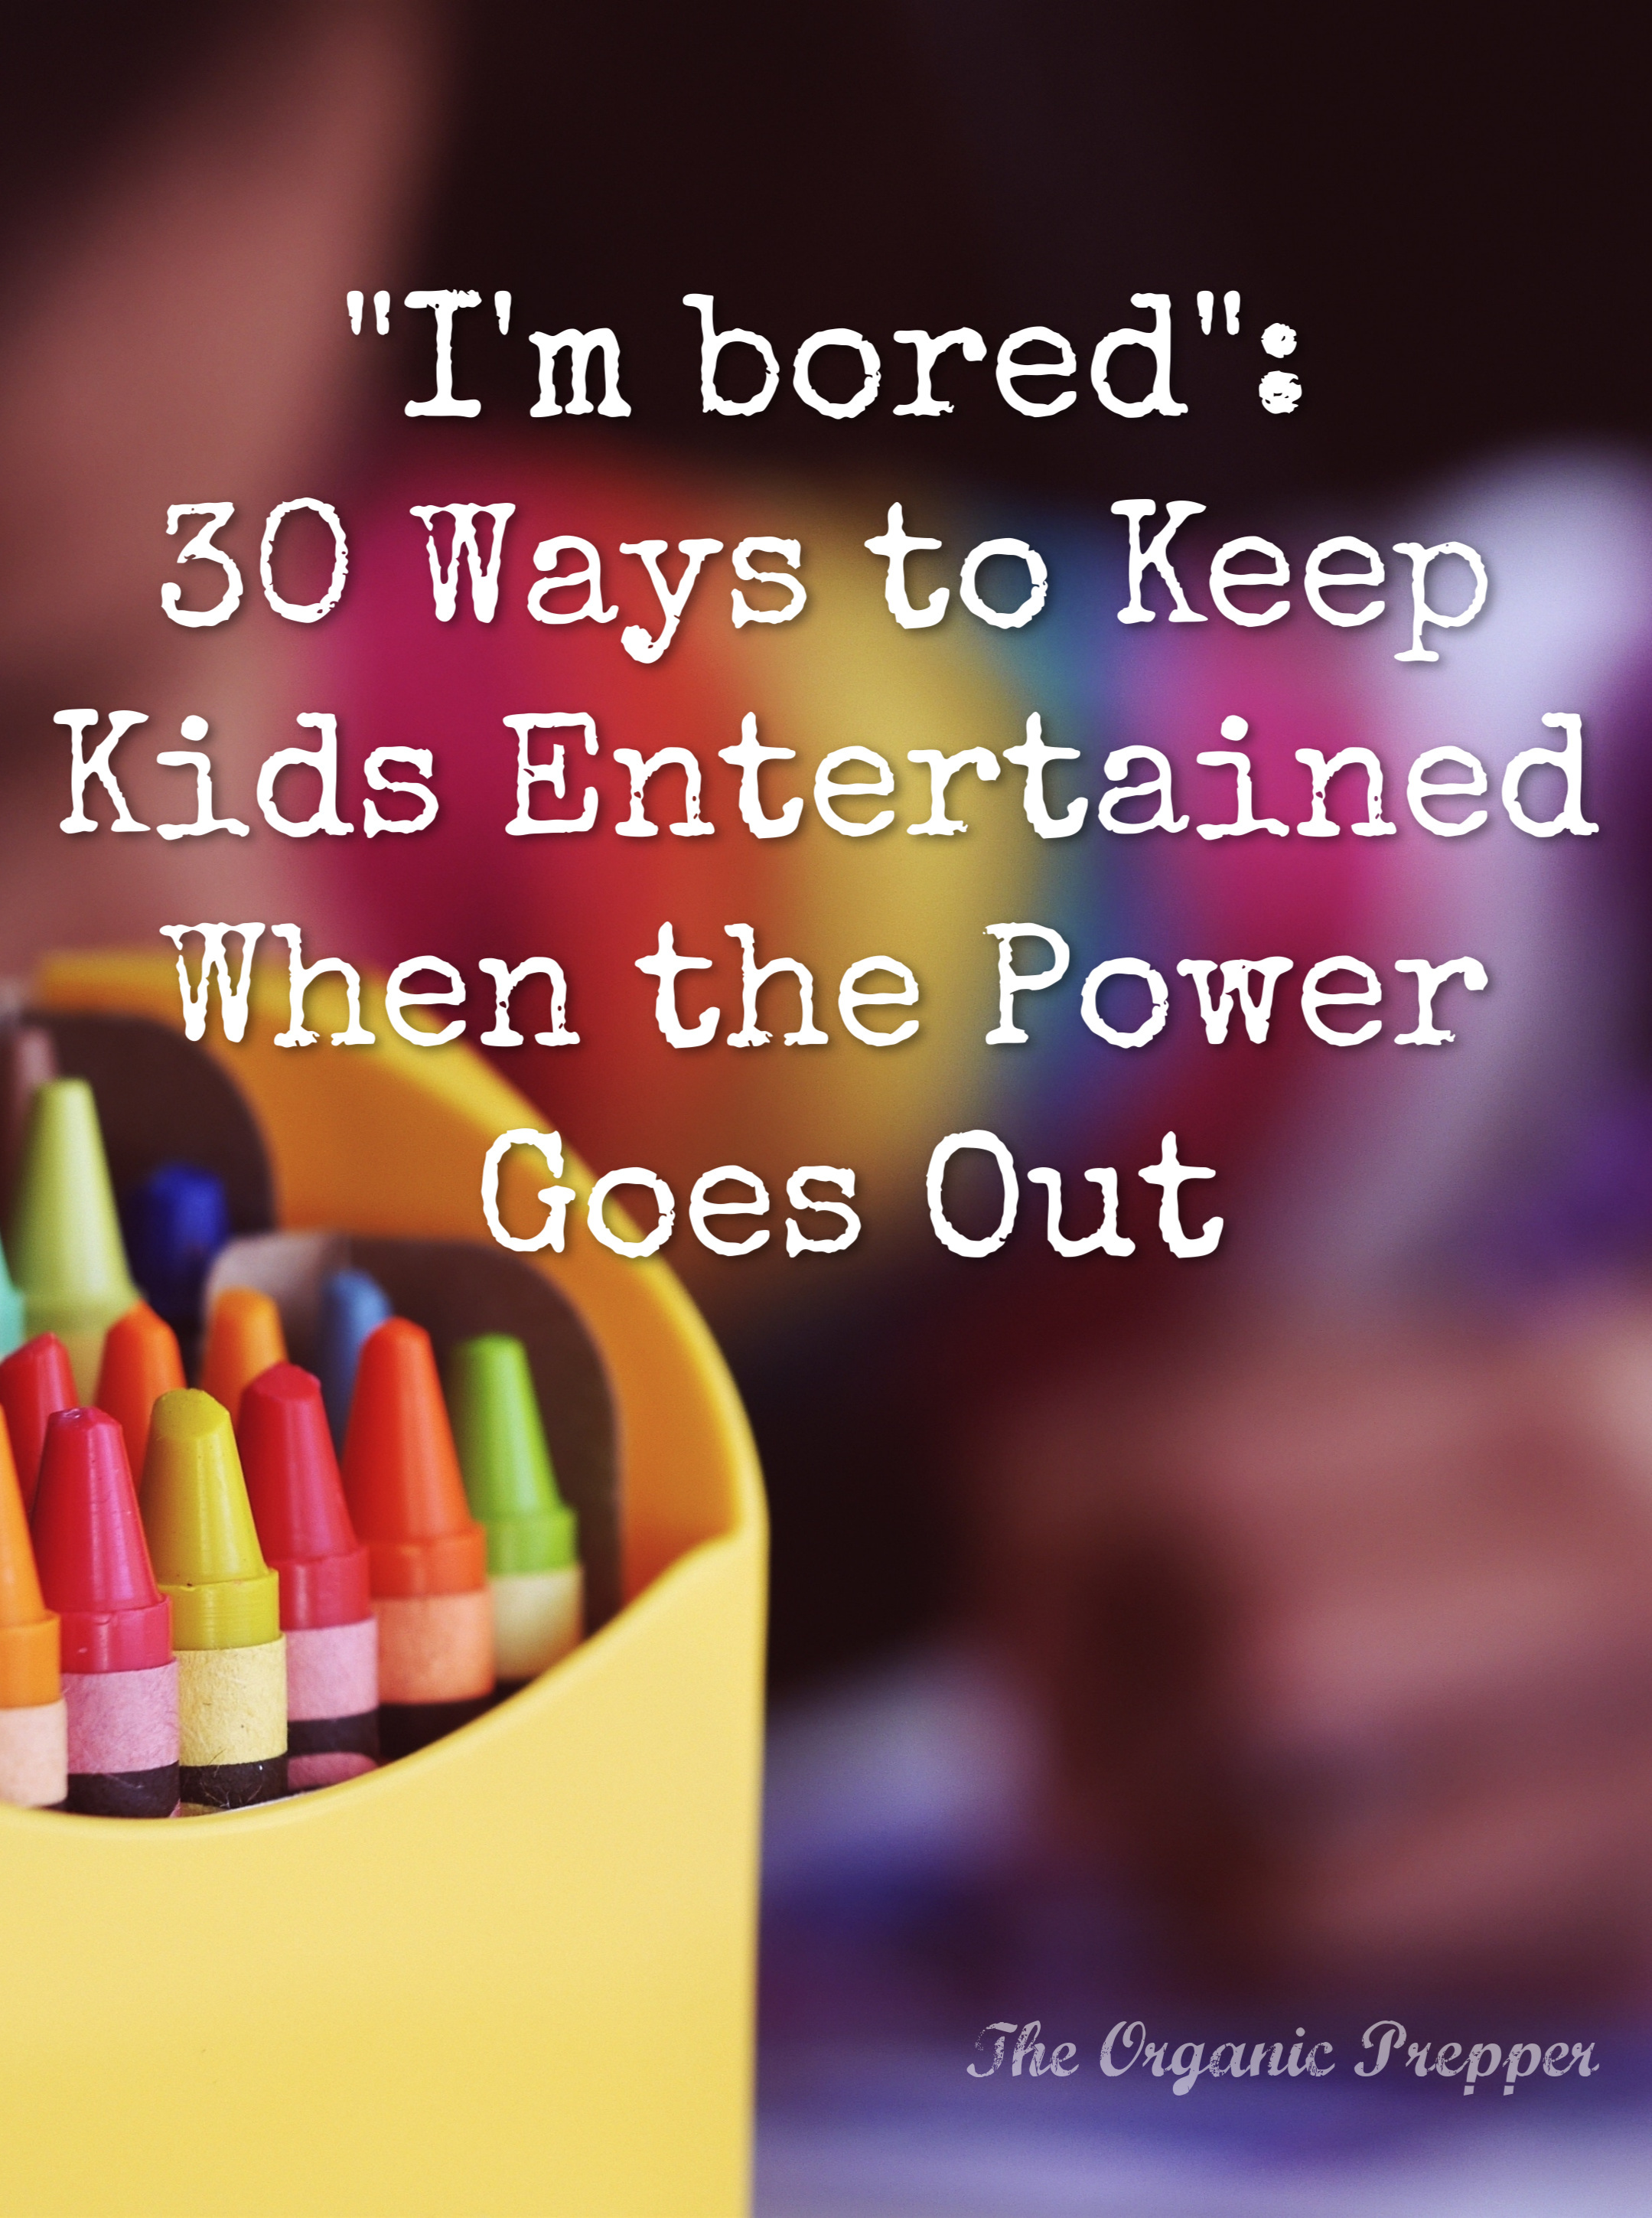 In all of your preps, if it didn't occur to you to put aside some activities that don't require power or a lot of light, you may be in for a bumpy ride in the event of a power failure. Learn 30 of the best ways to keep kids entertained when the power goes out.